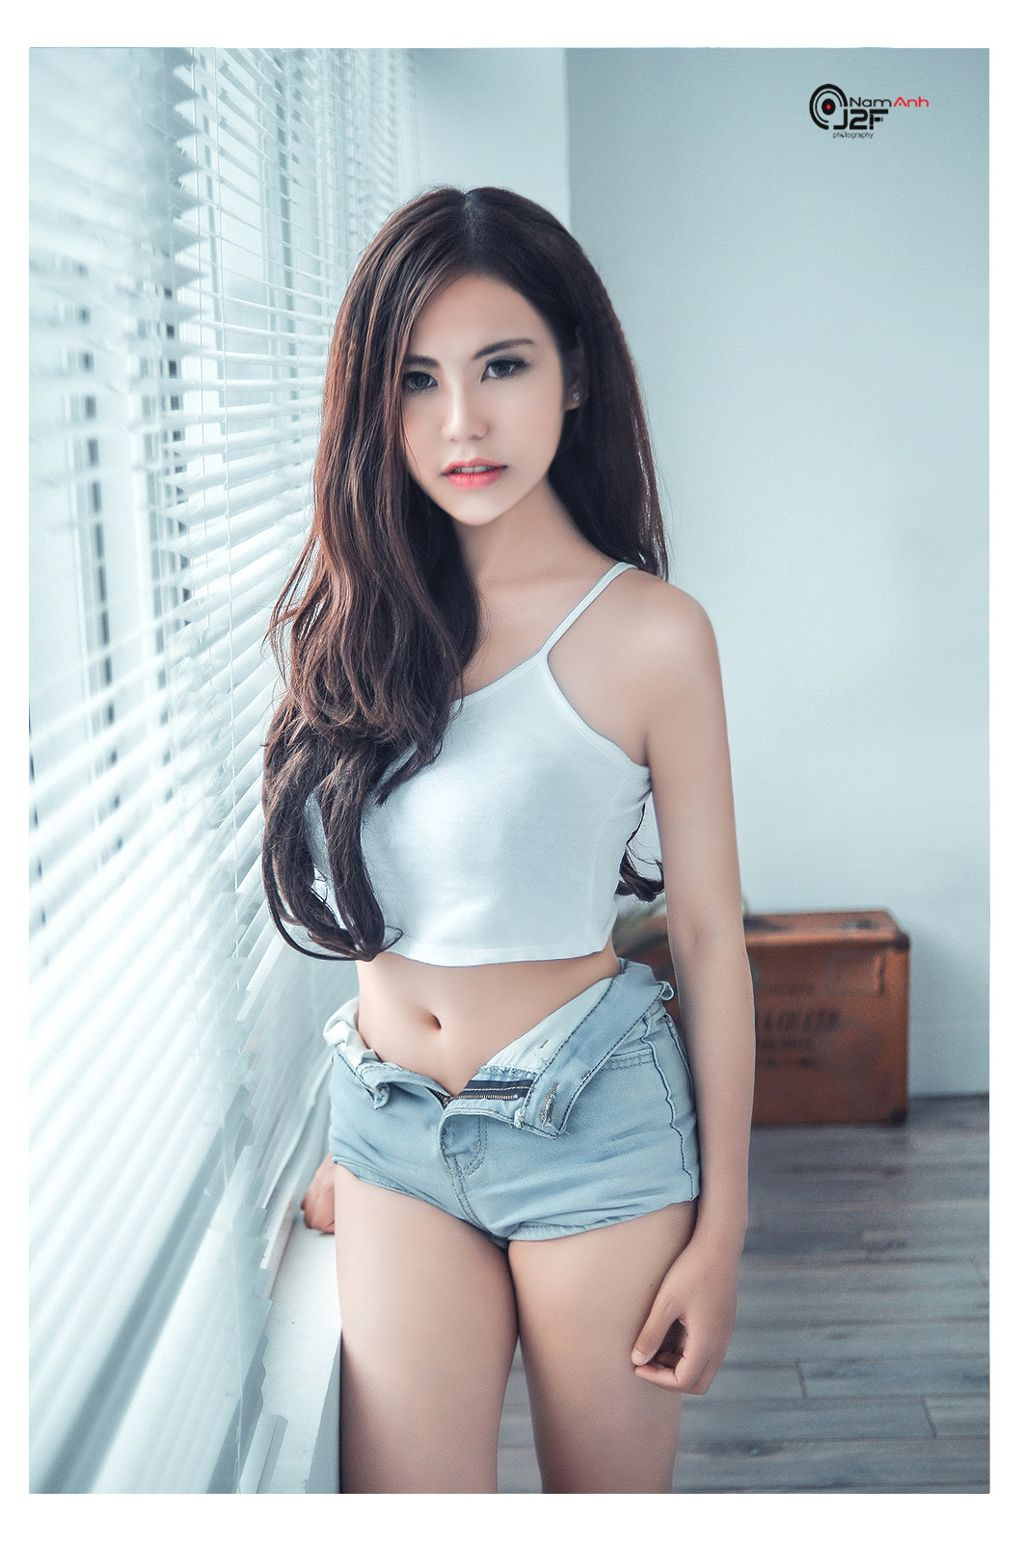 Image-Vietnamese-Model-Sexy-Beauty-of-Beautiful-Girls-Taken-by-NamAnh-Photography-3-TruePic.net- Picture-9